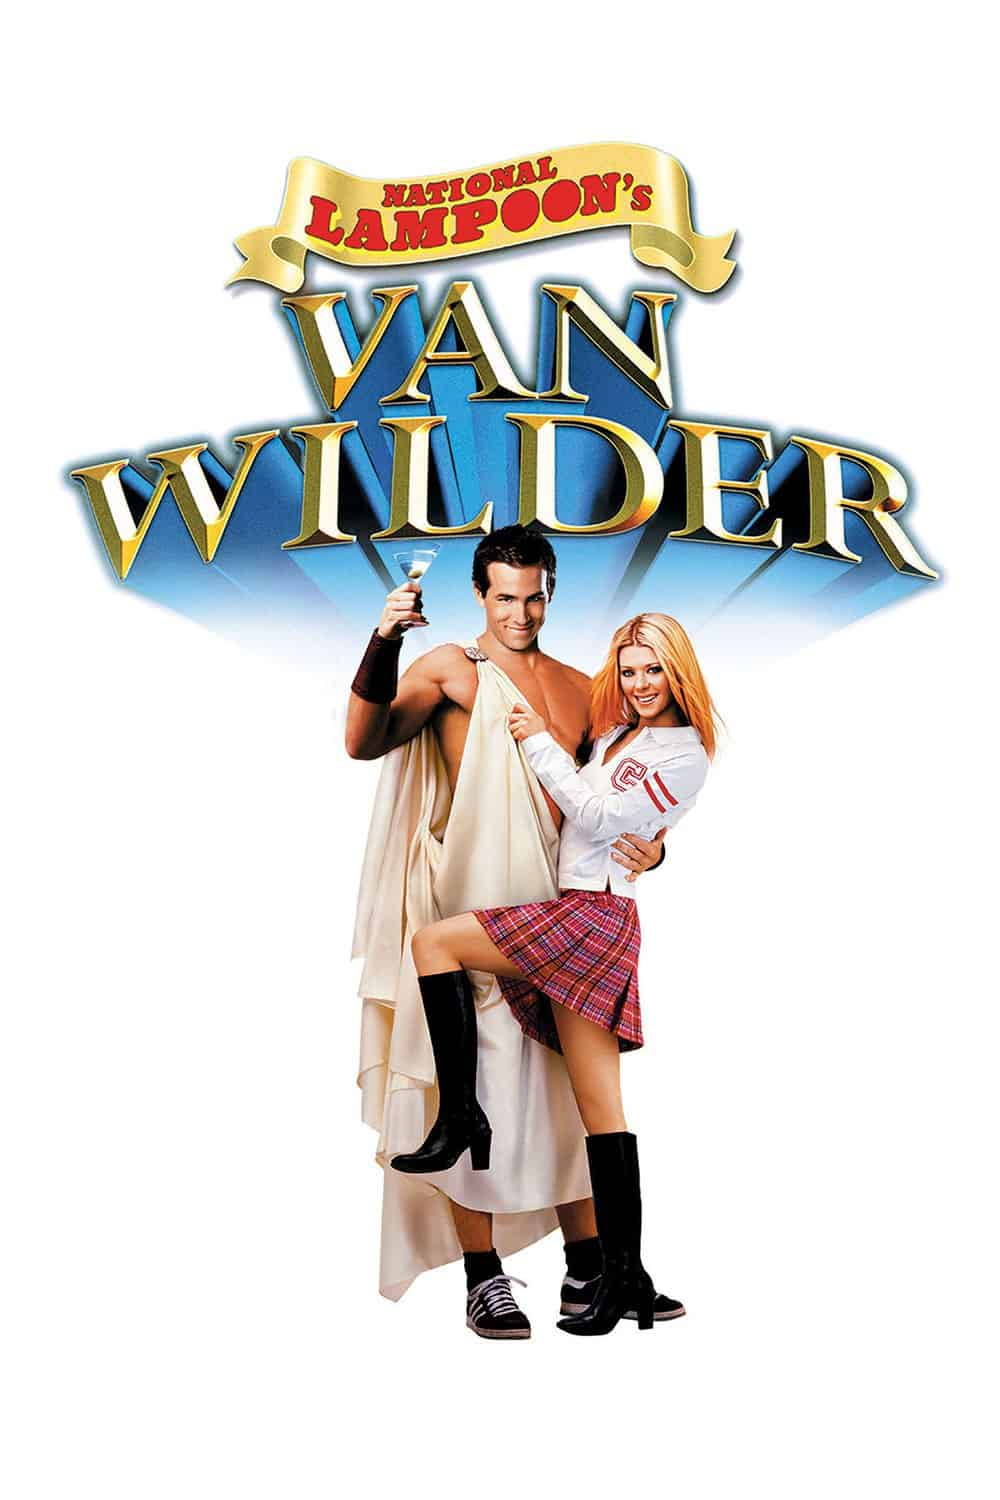 National Lampoon's Van Wilder, 2002